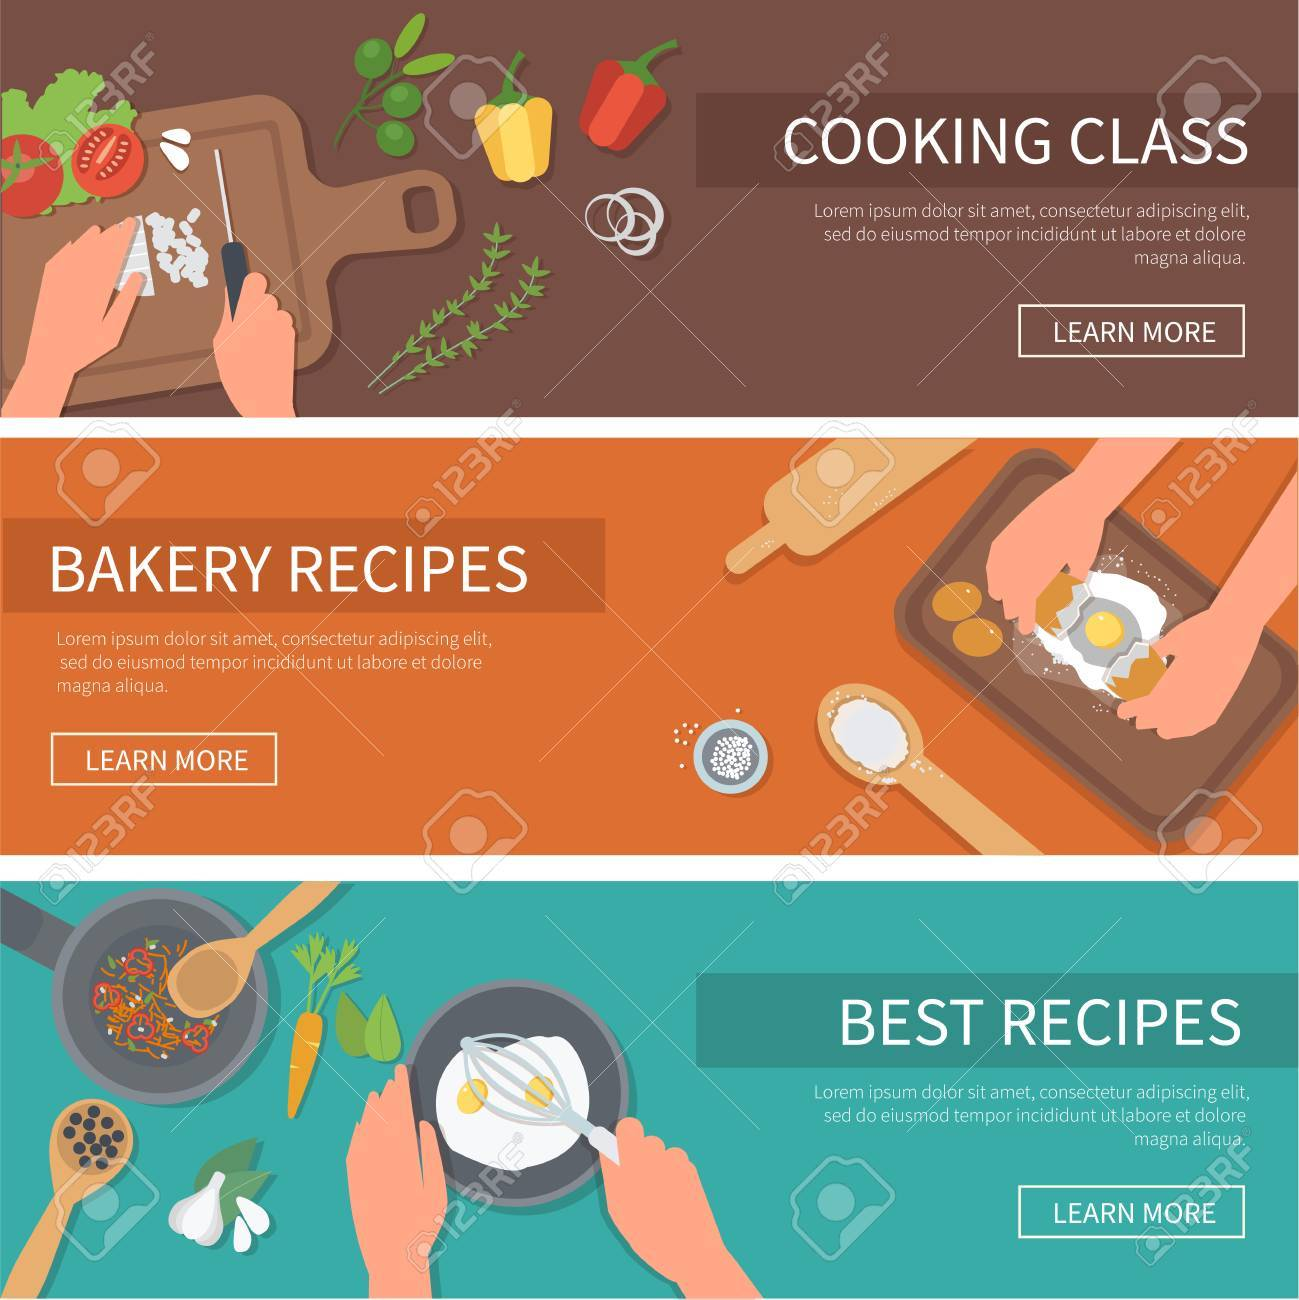 cooking web banners set. Cooking class, bakery, recipes.